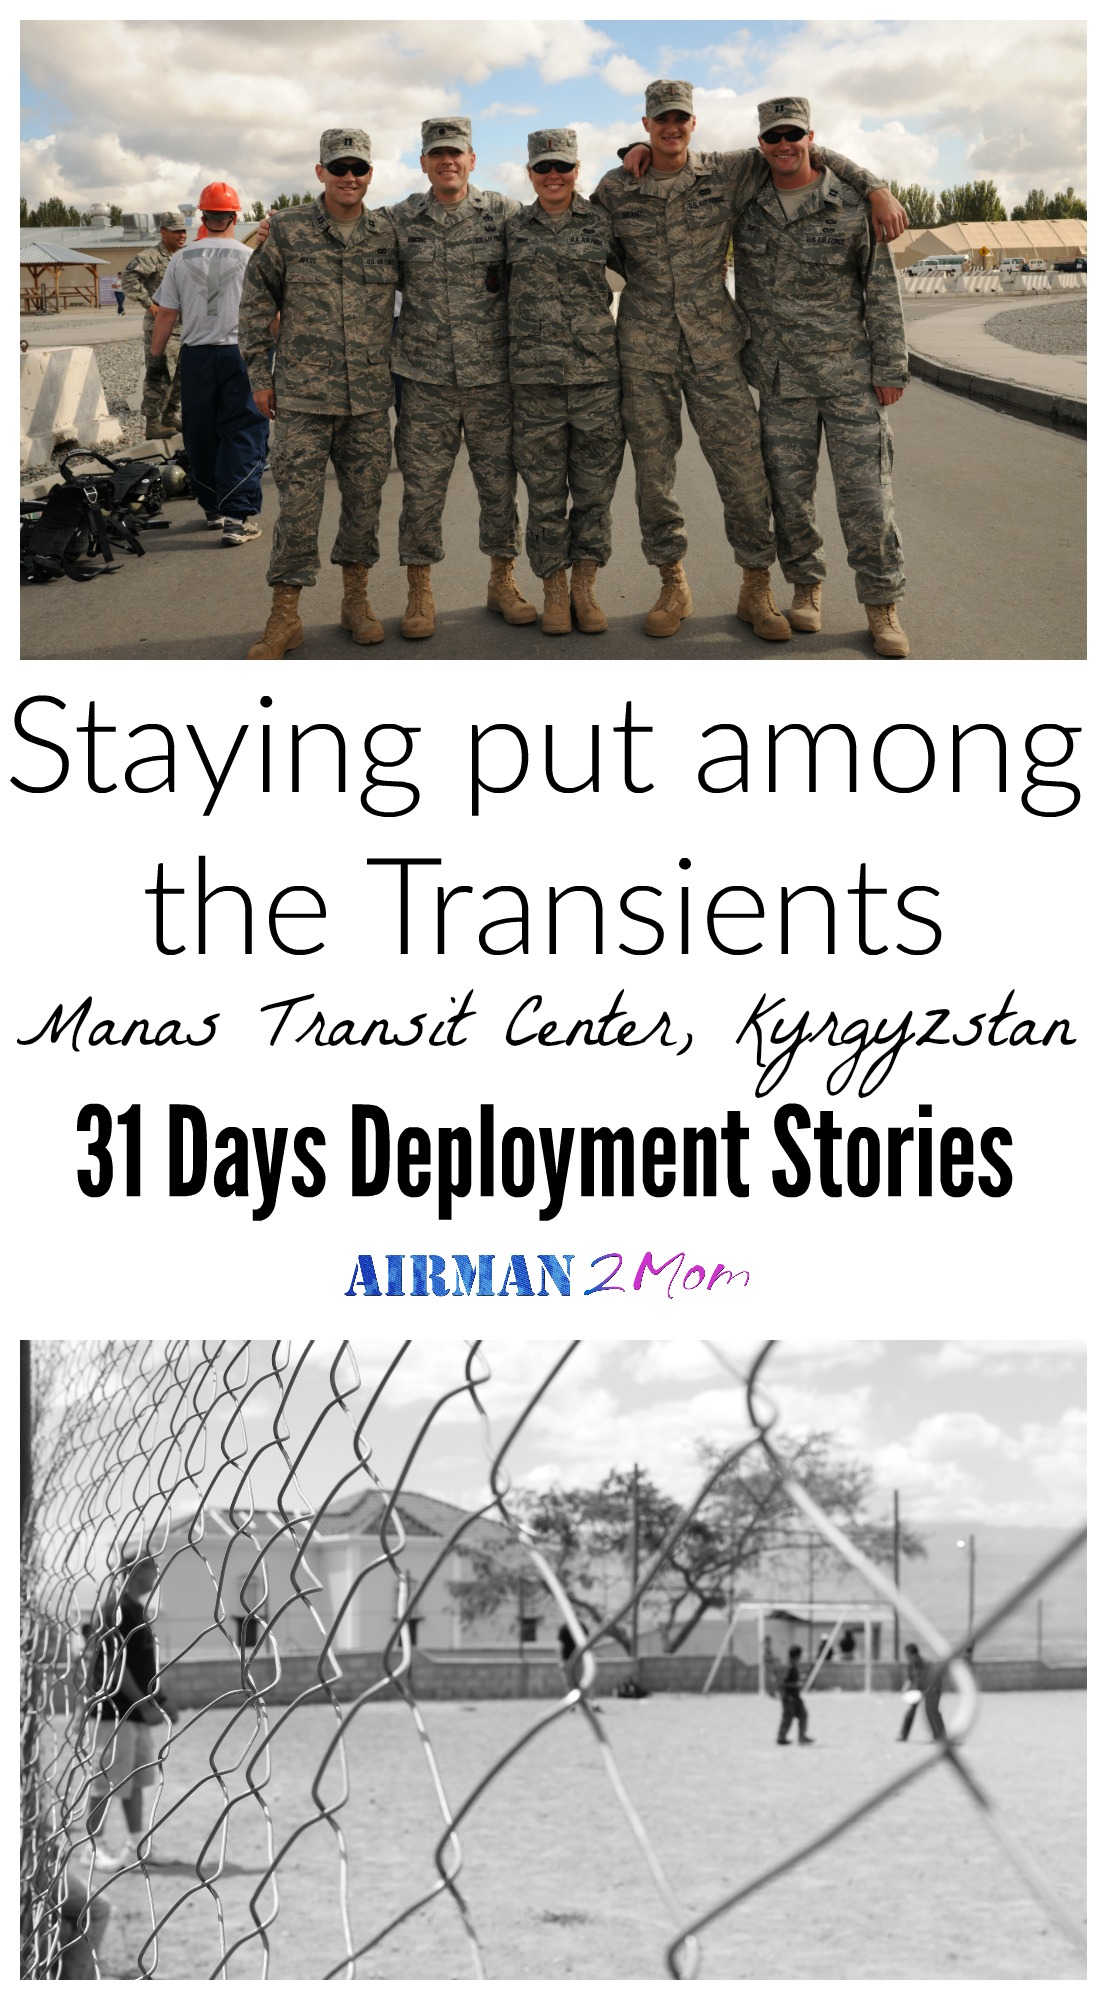 Staying Put Among the Transitent Manas Transit Center. Hear Rachel's experience of being part of the Civil Engineering office while deployed to Manas Transit Center. Day 6 of 31 Deployment Stories #write31days #deploymentstories #thisisdeployment #femaleveteran